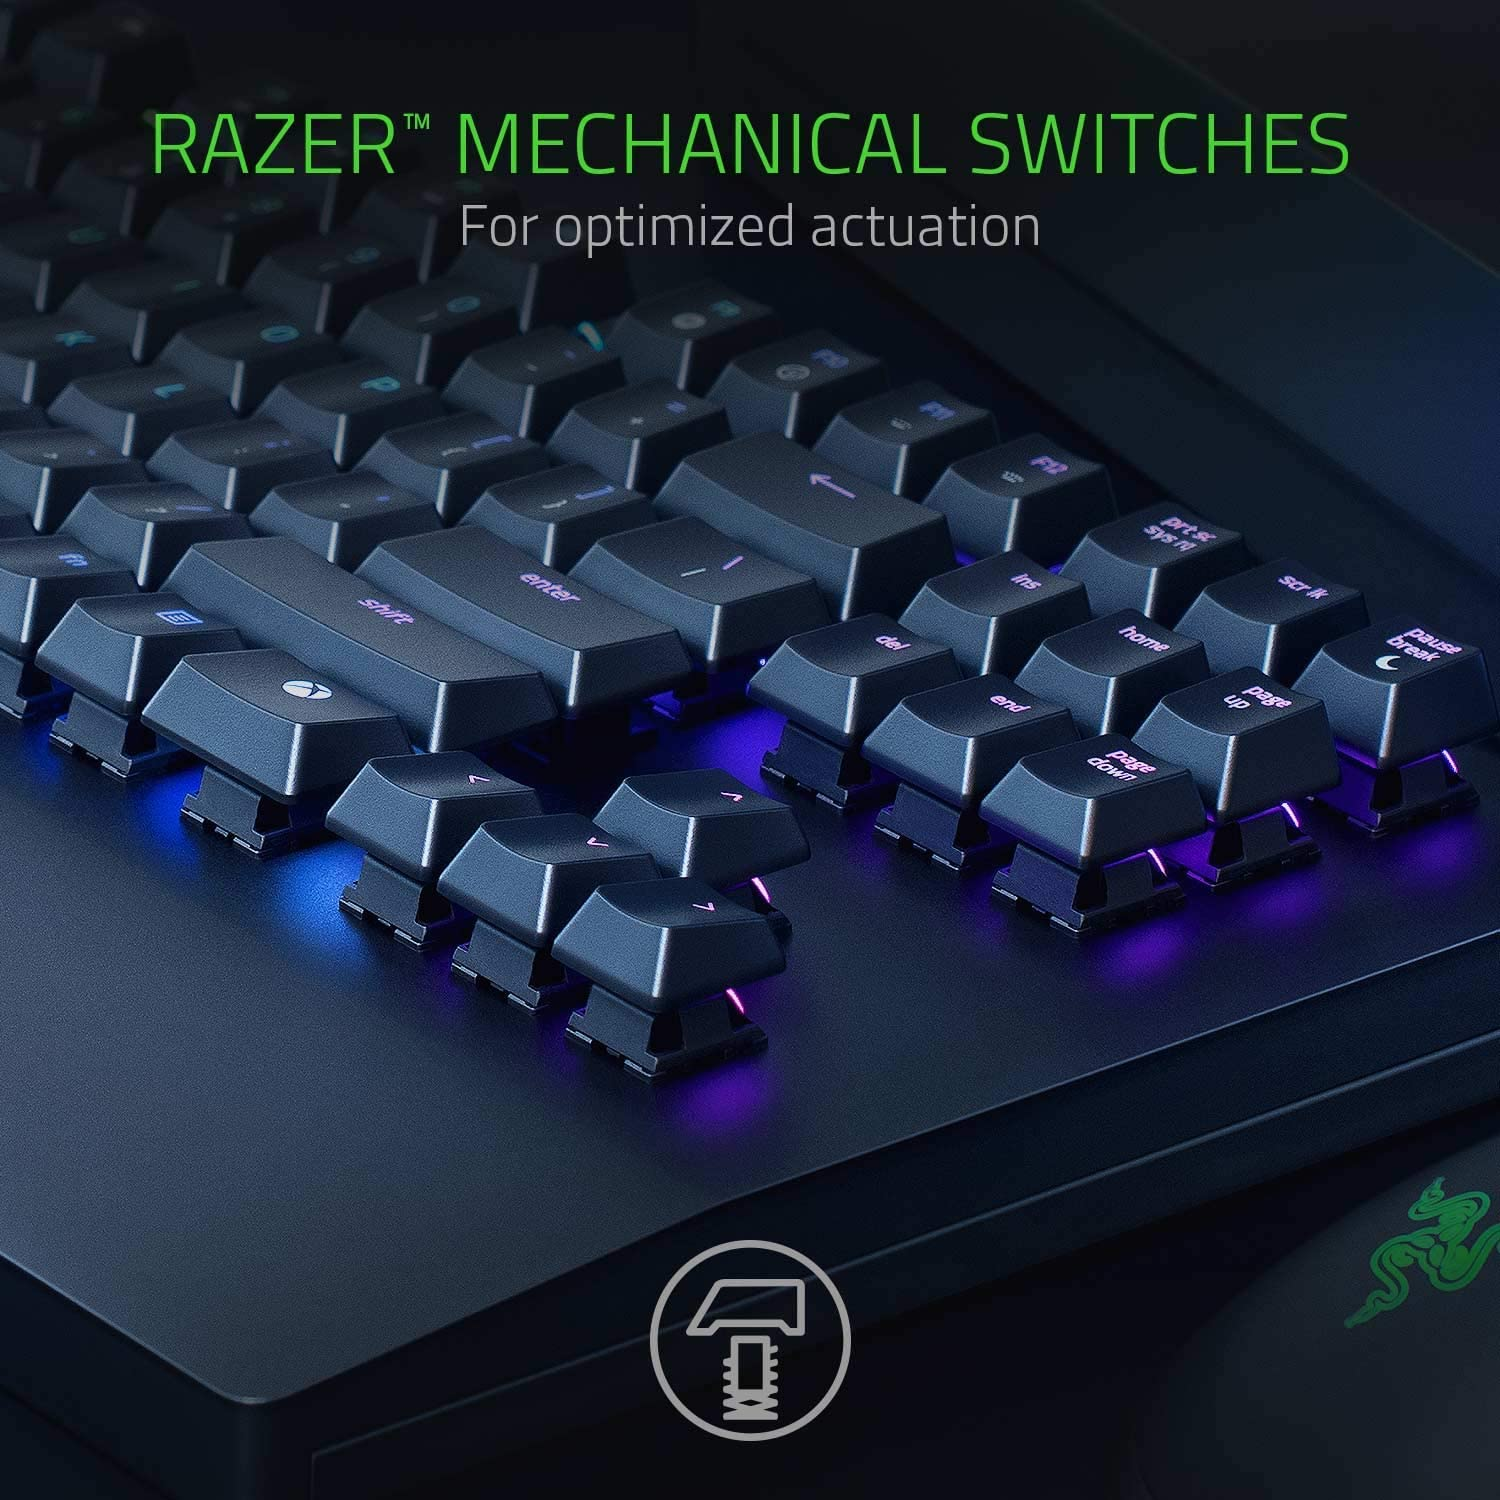 Razer Turret Wireless Mechanical Gaming Keyboard /& Mouse Combo for PC /& Xbox One: Chroma RGB//Dynamic Lighting Renewed Retractable Magnetic Mouse Mat 40hr Battery